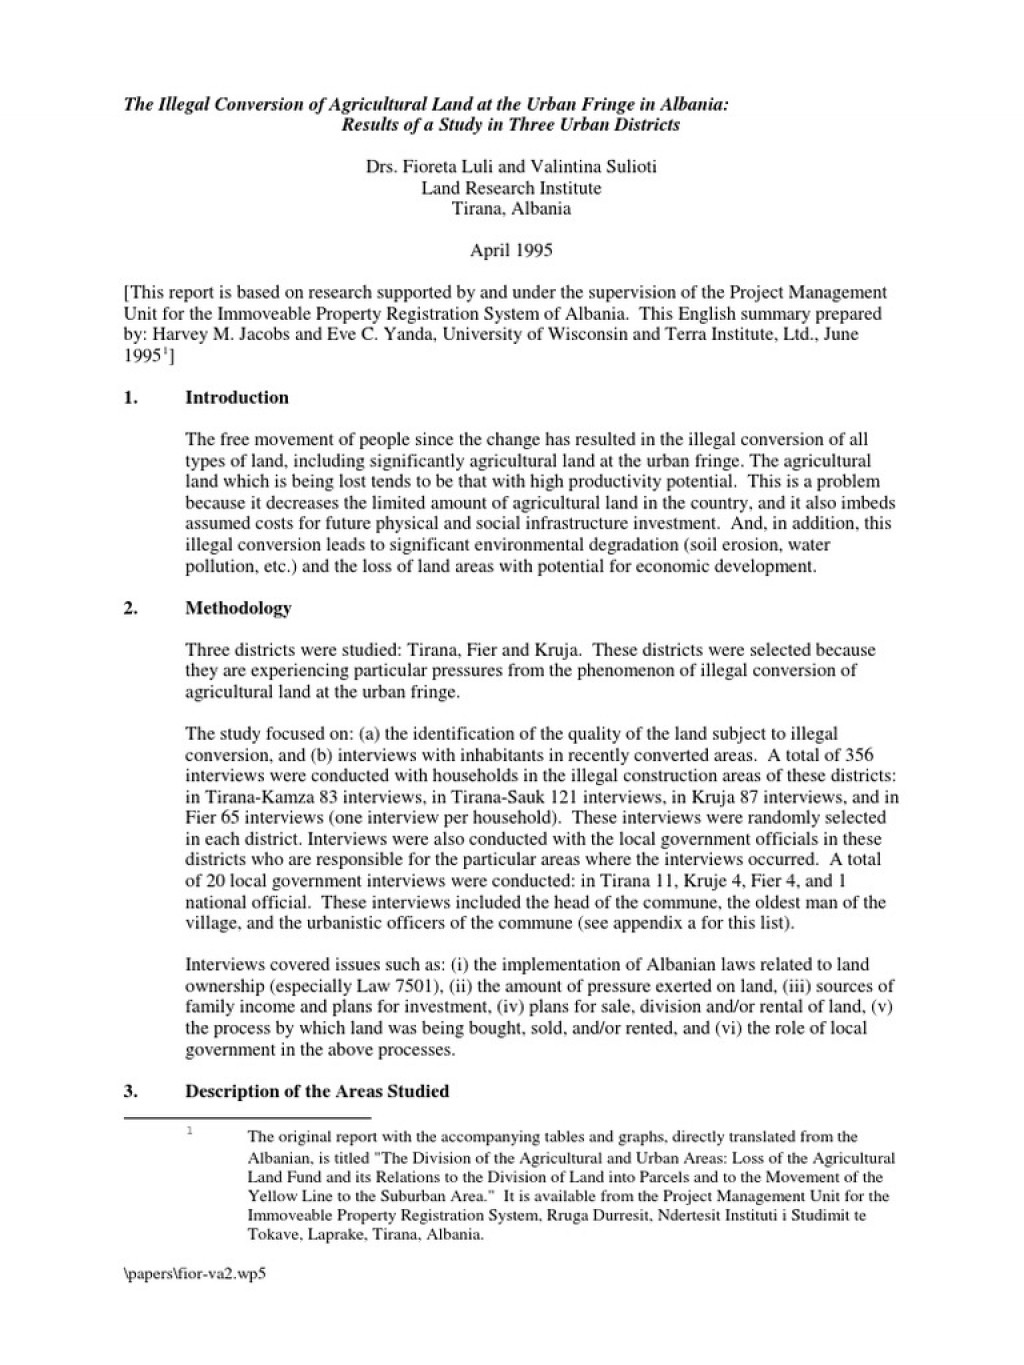 007 Research Paper Law For Sale Illegal Papers Impressive Large